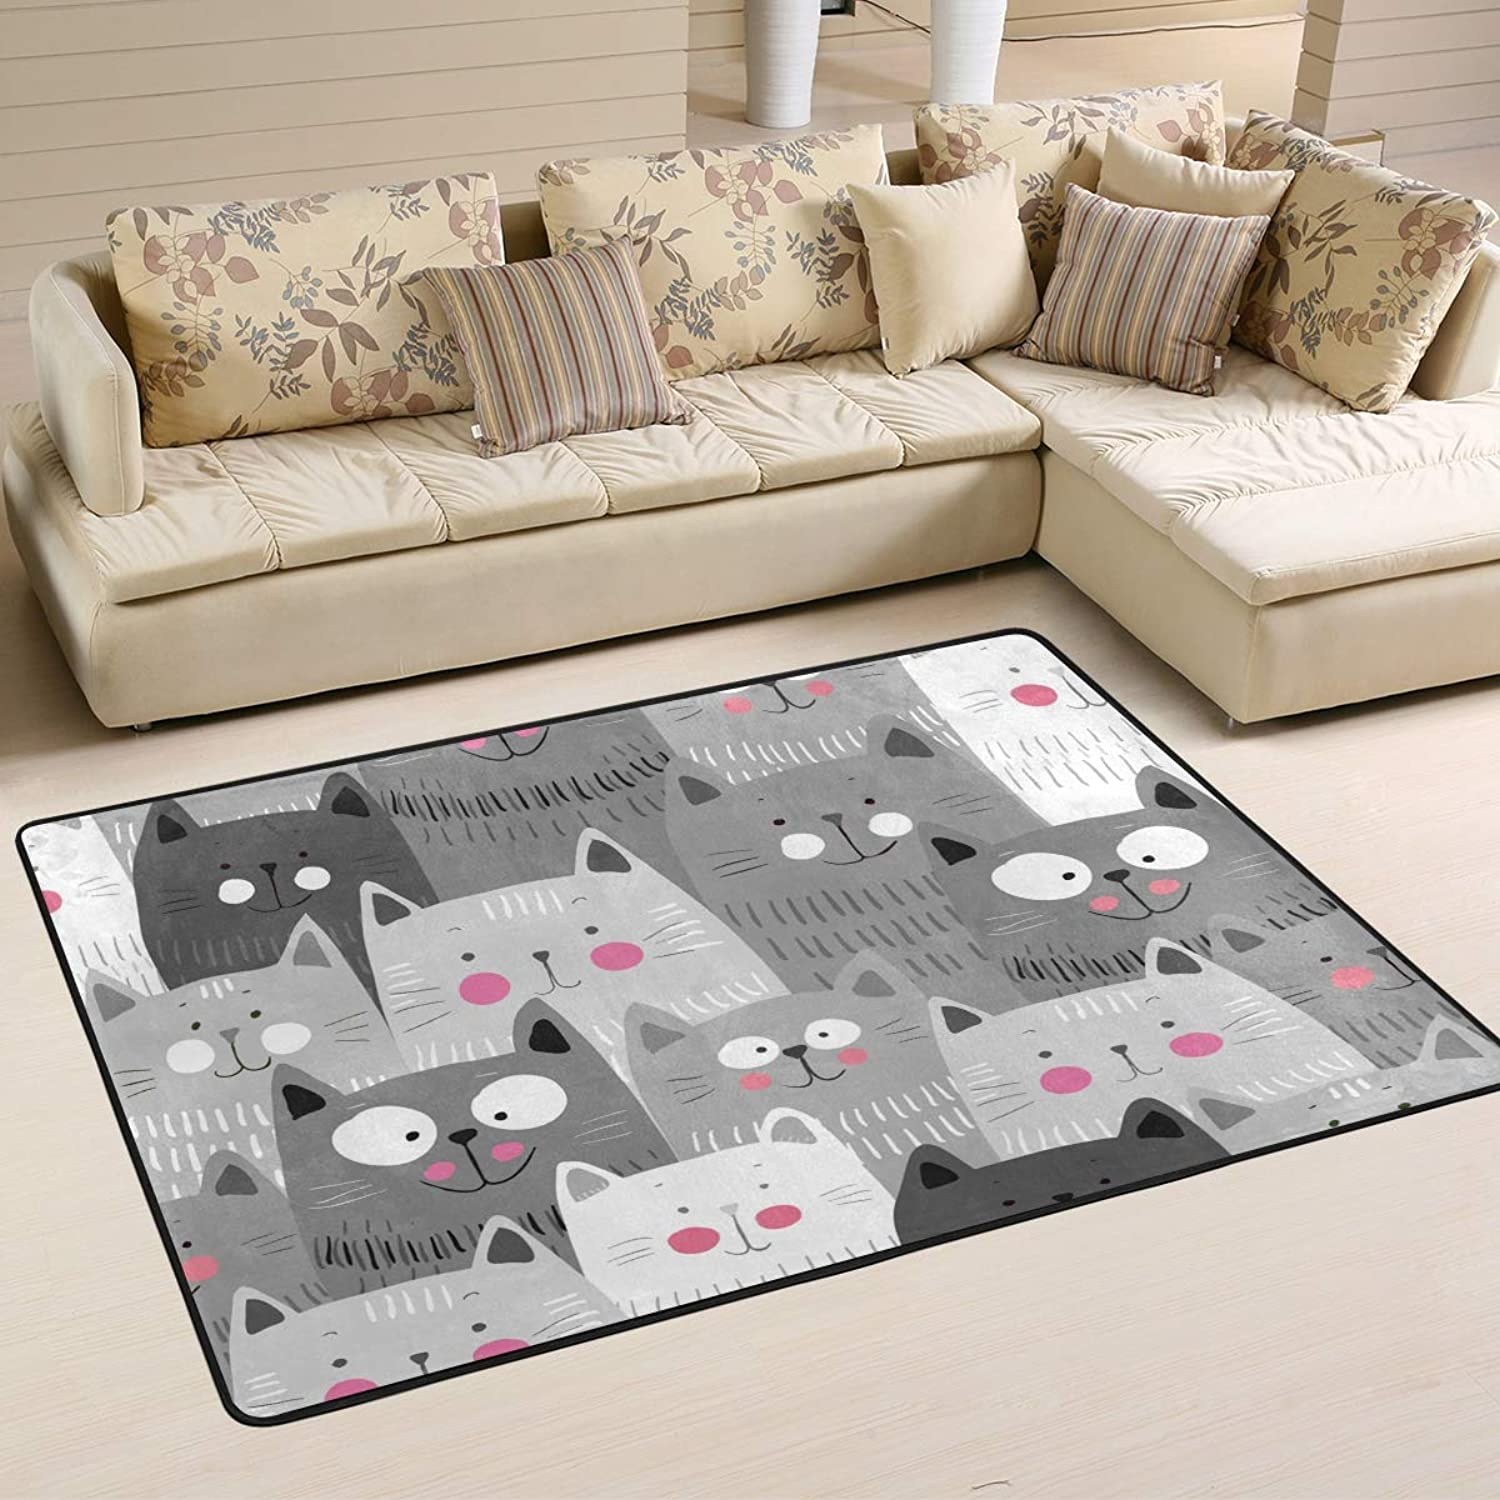 Area Rugs Doormats Cute Cats colorful Soft Carpet Mat 6'x4' (72x48 Inches) for Living Dining Dorm Room Bedroom Home Decorative